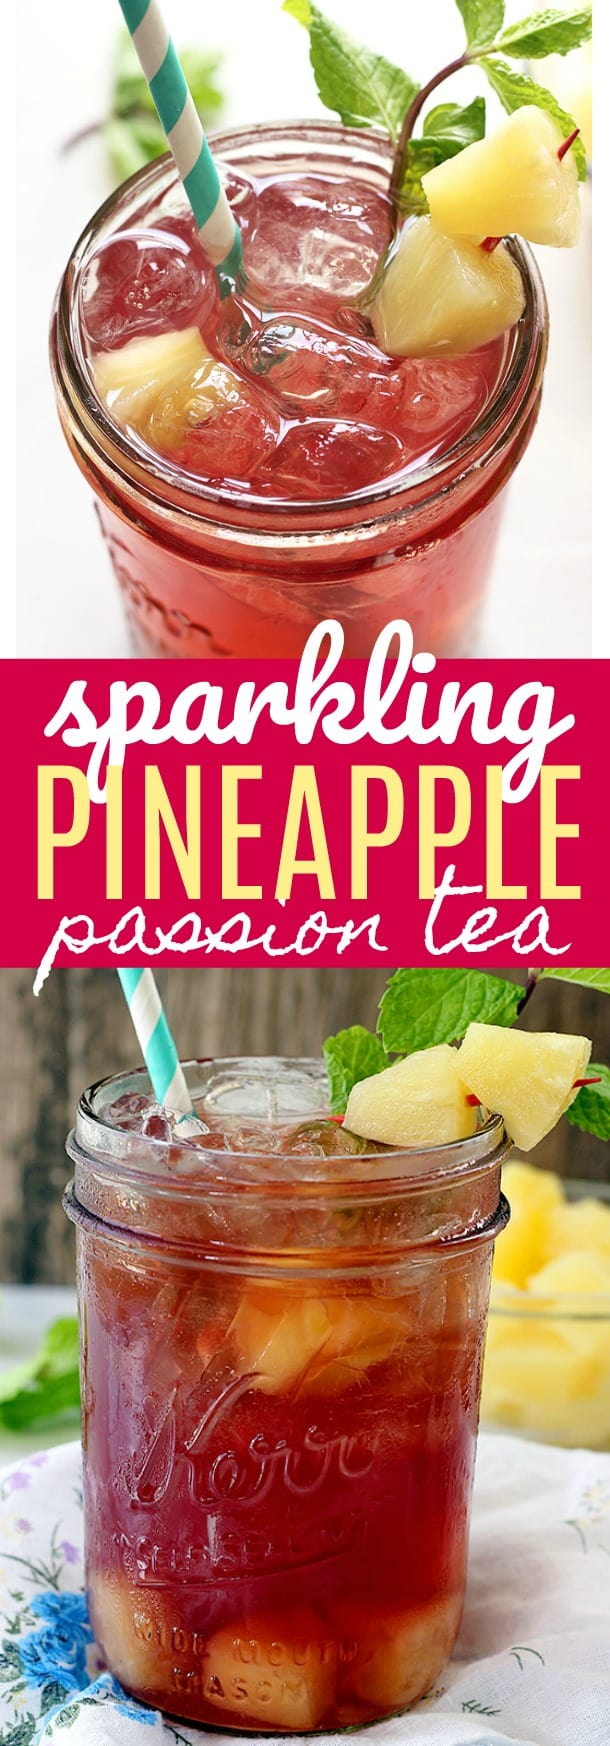 Sparkling Pineapple Passion Tea - If you like Tazo® Passion Tea, then you will love this refreshing twist on your favorite drink! Made with three simple ingredients and perfect for sipping on this summer.